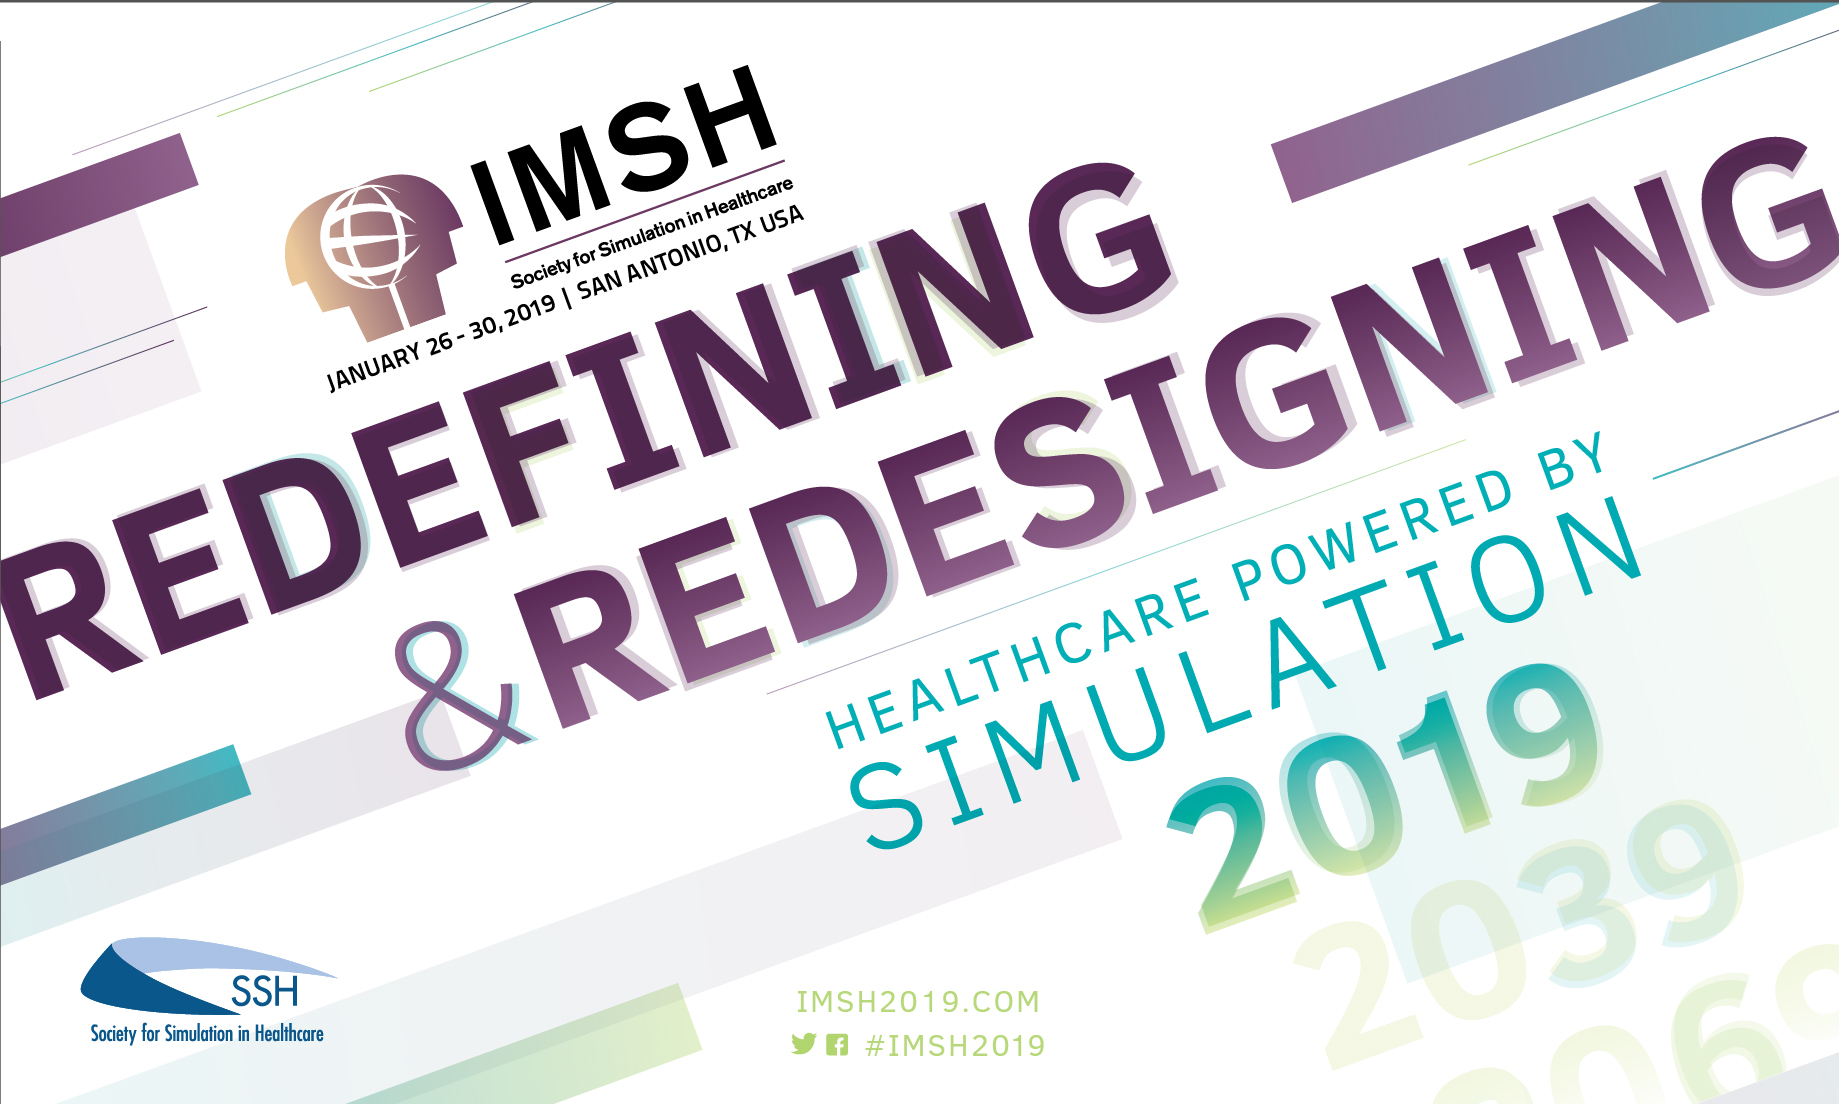 Save the date IMSH 2019